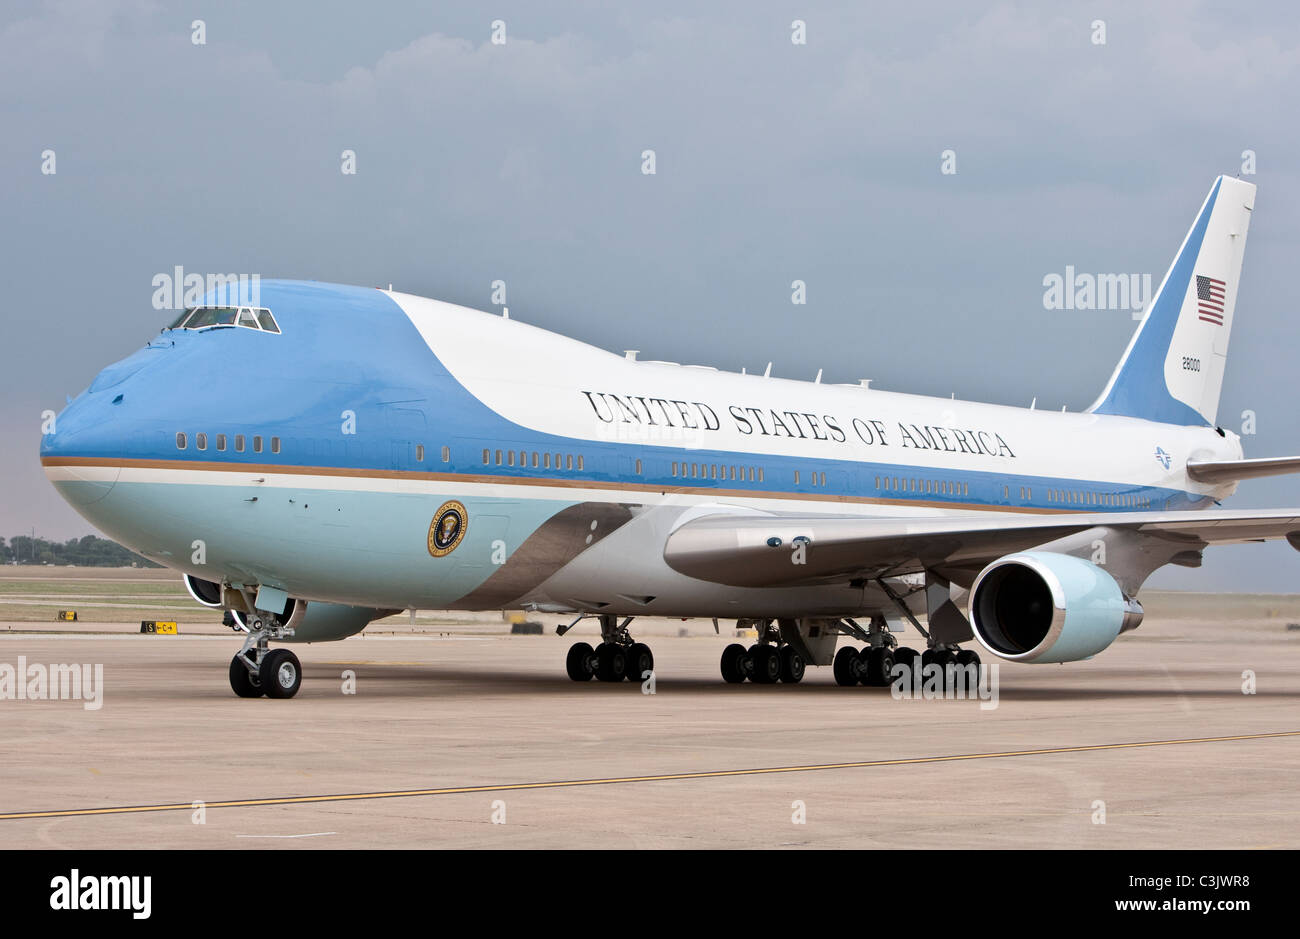 Air Force One, the U.S. Air Force jet carrying the President of the United States, lands in Austin Texas USA - Stock Image